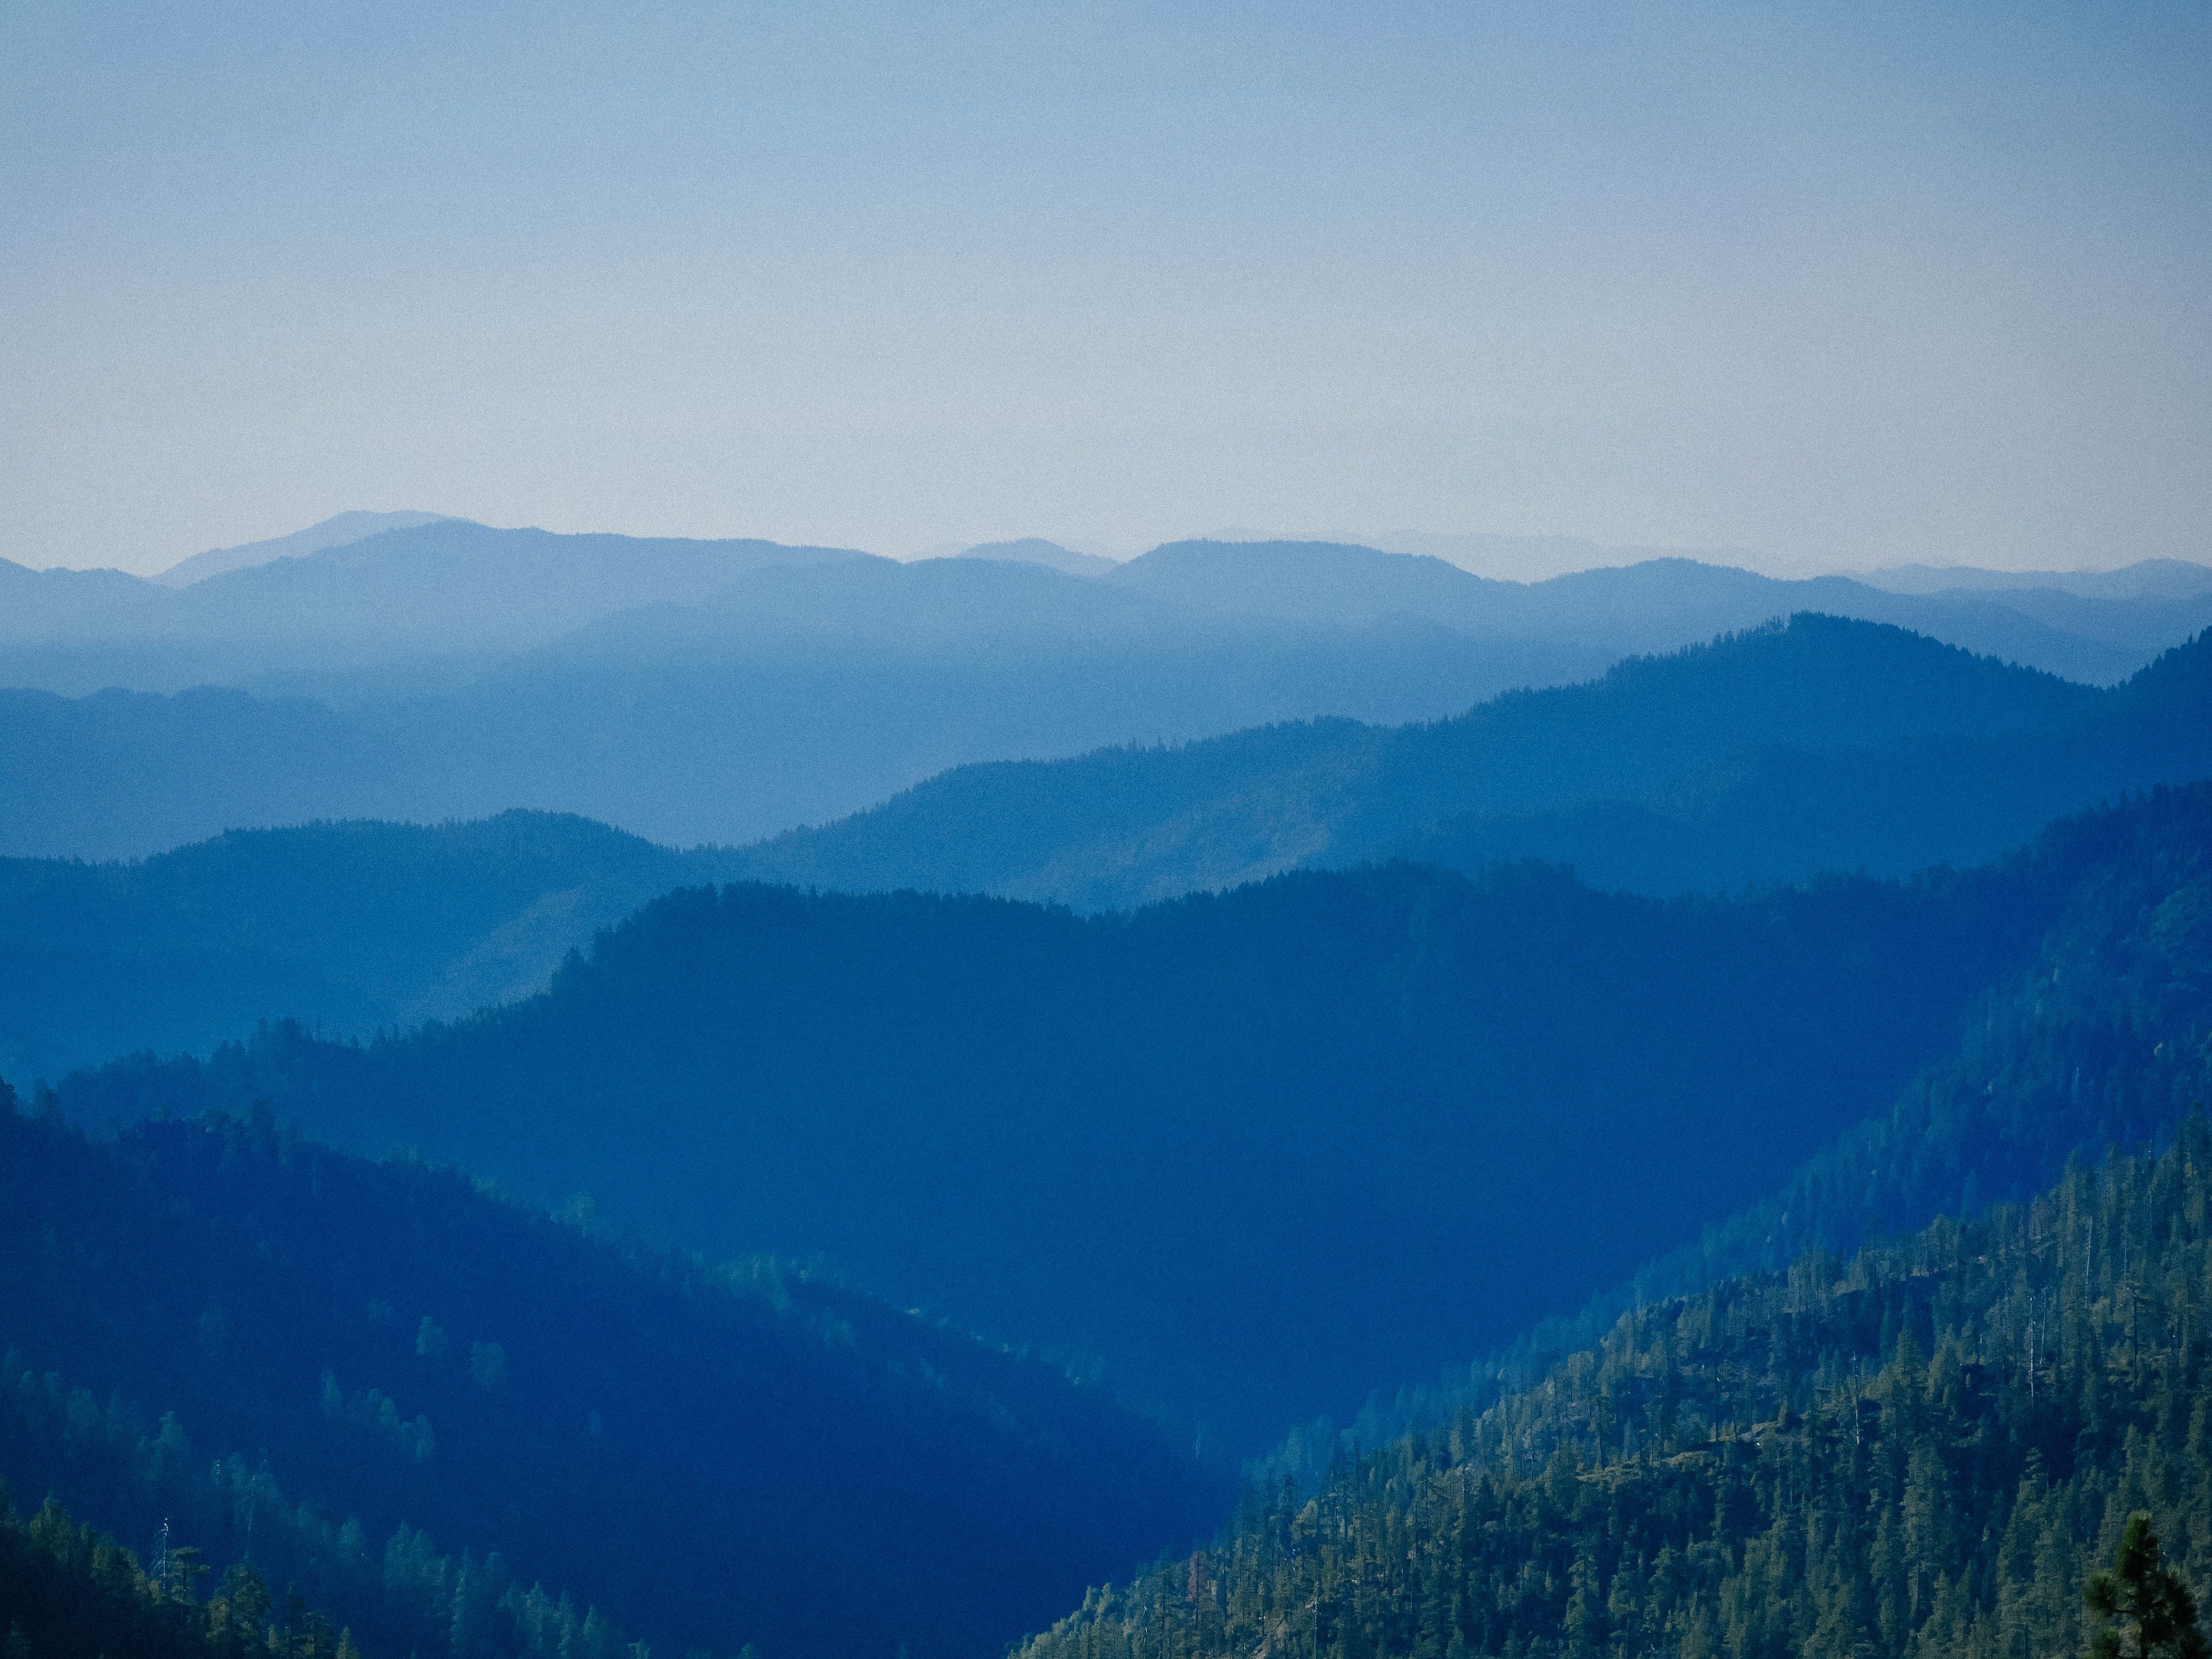 Wooded mountain ridges stretching to the horizon in the early morning